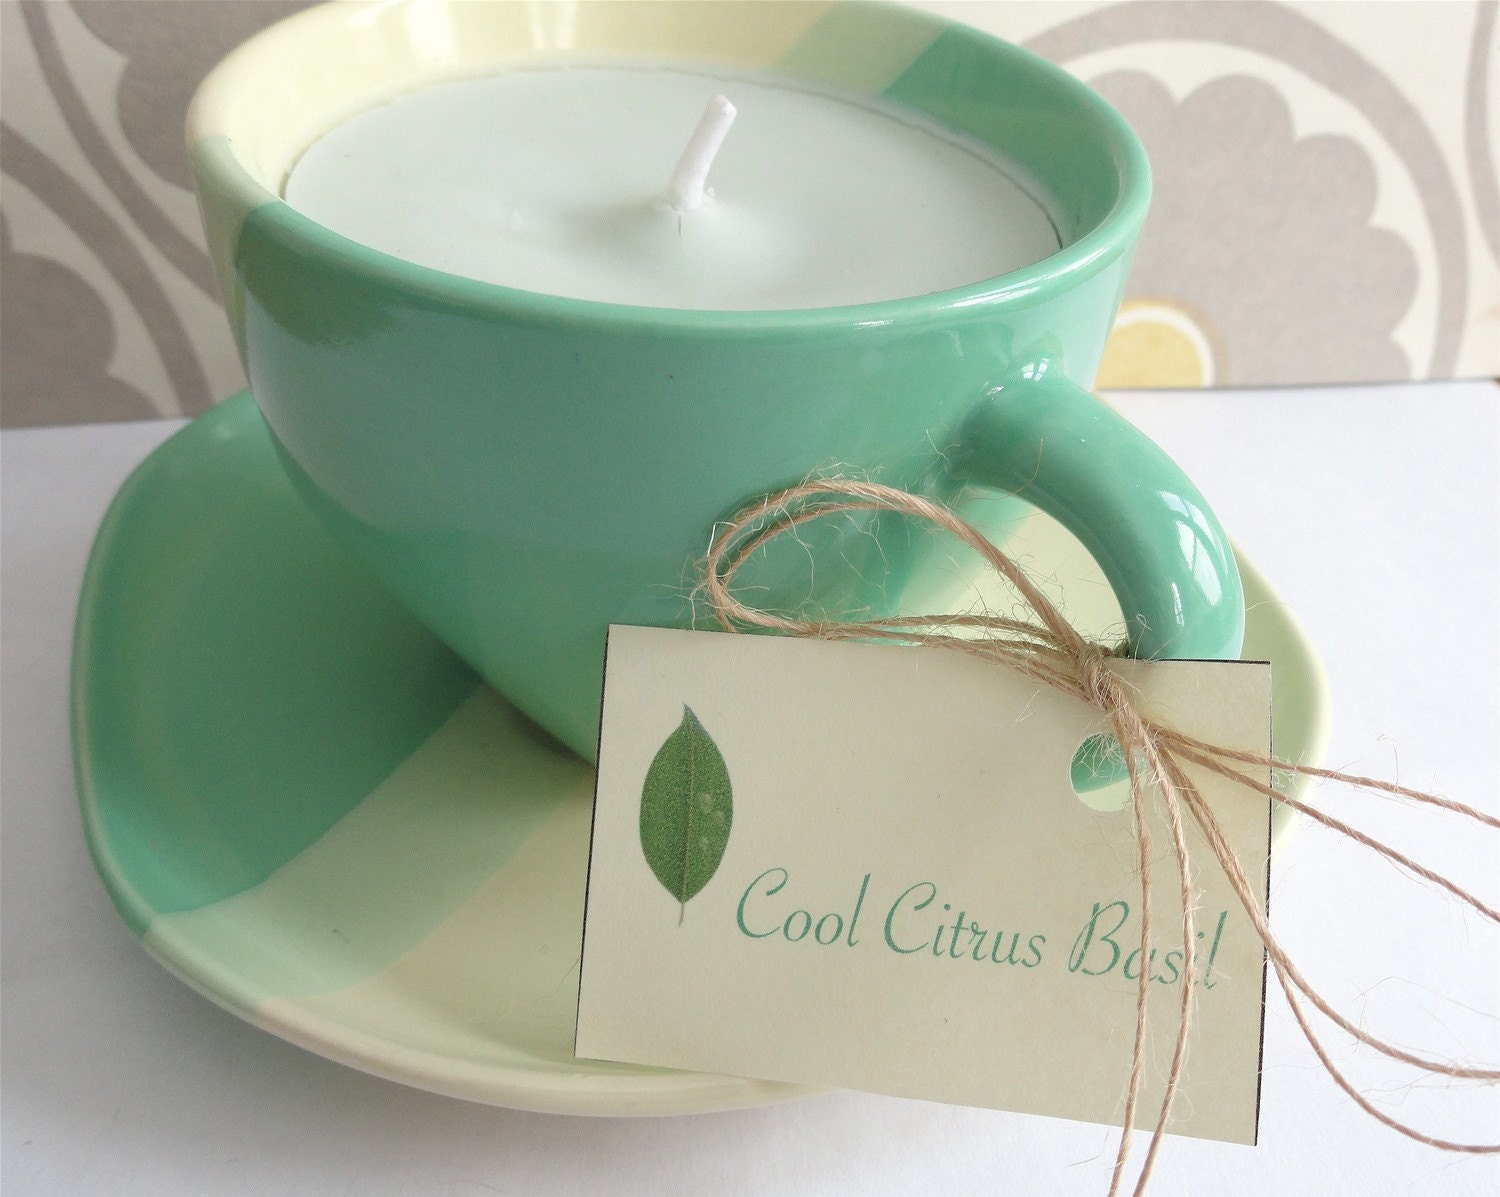 COOL CITRUS BASIL Handcrafted Soy Teacup Candle (7 oz.)